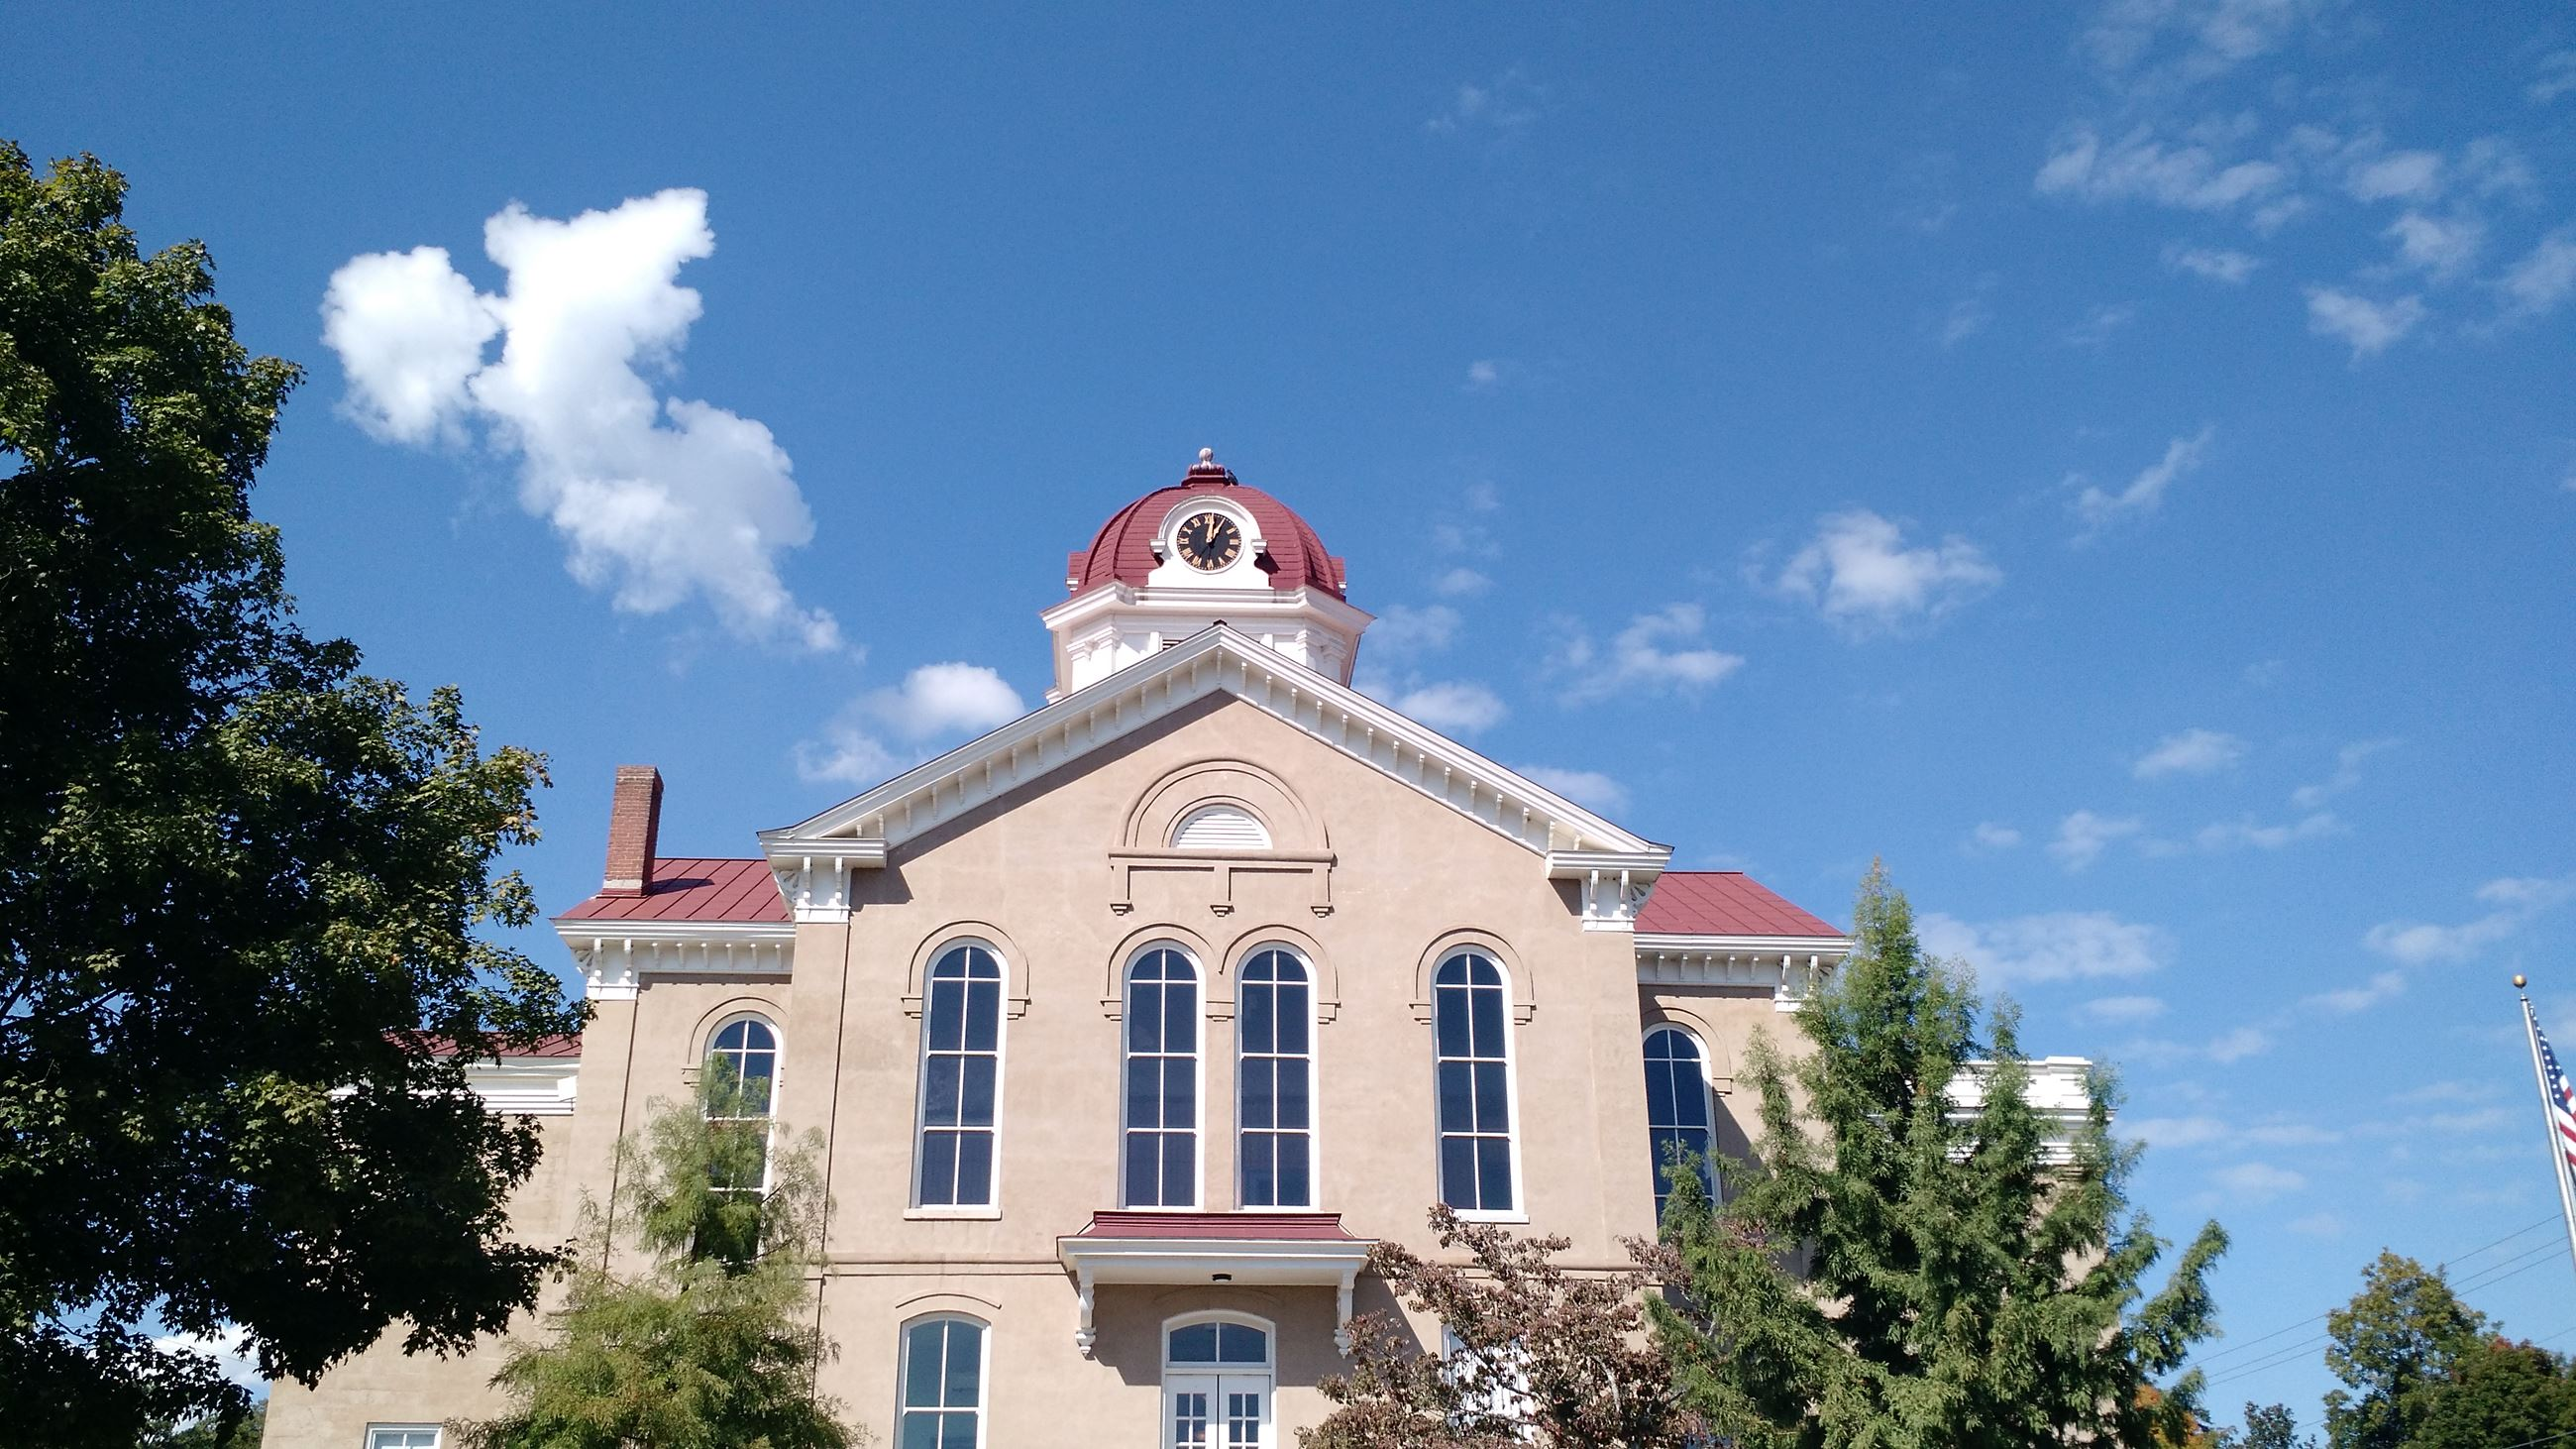 Historic Courthouse exterior